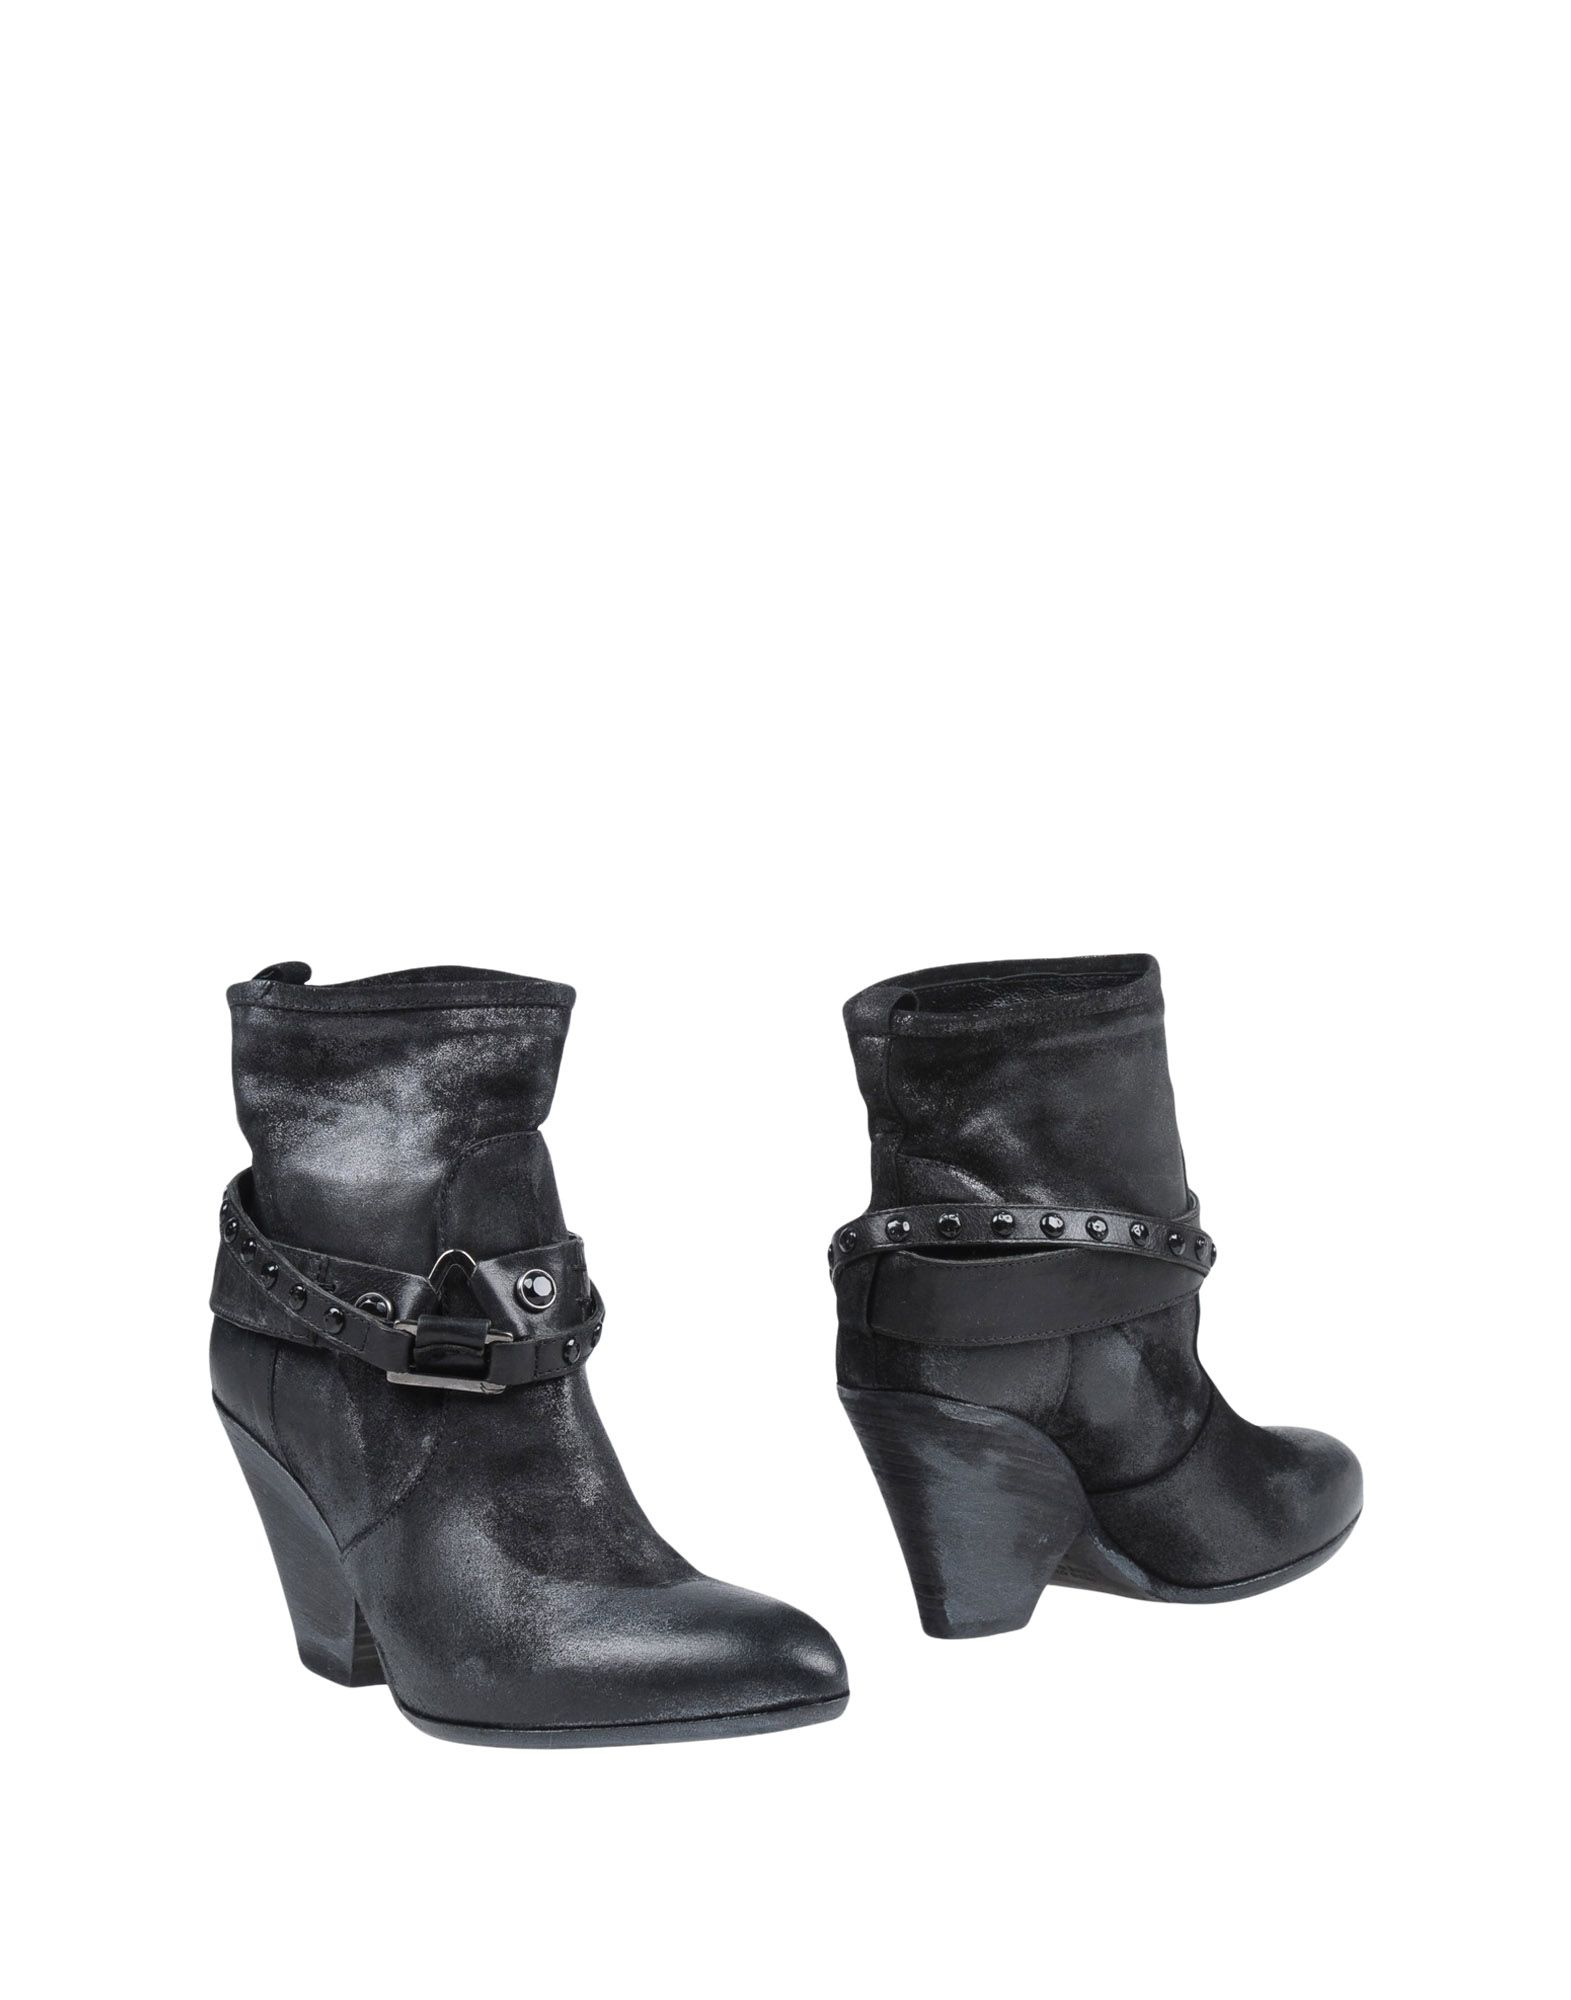 Bottine Garrice Femme - Bottines Garrice sur